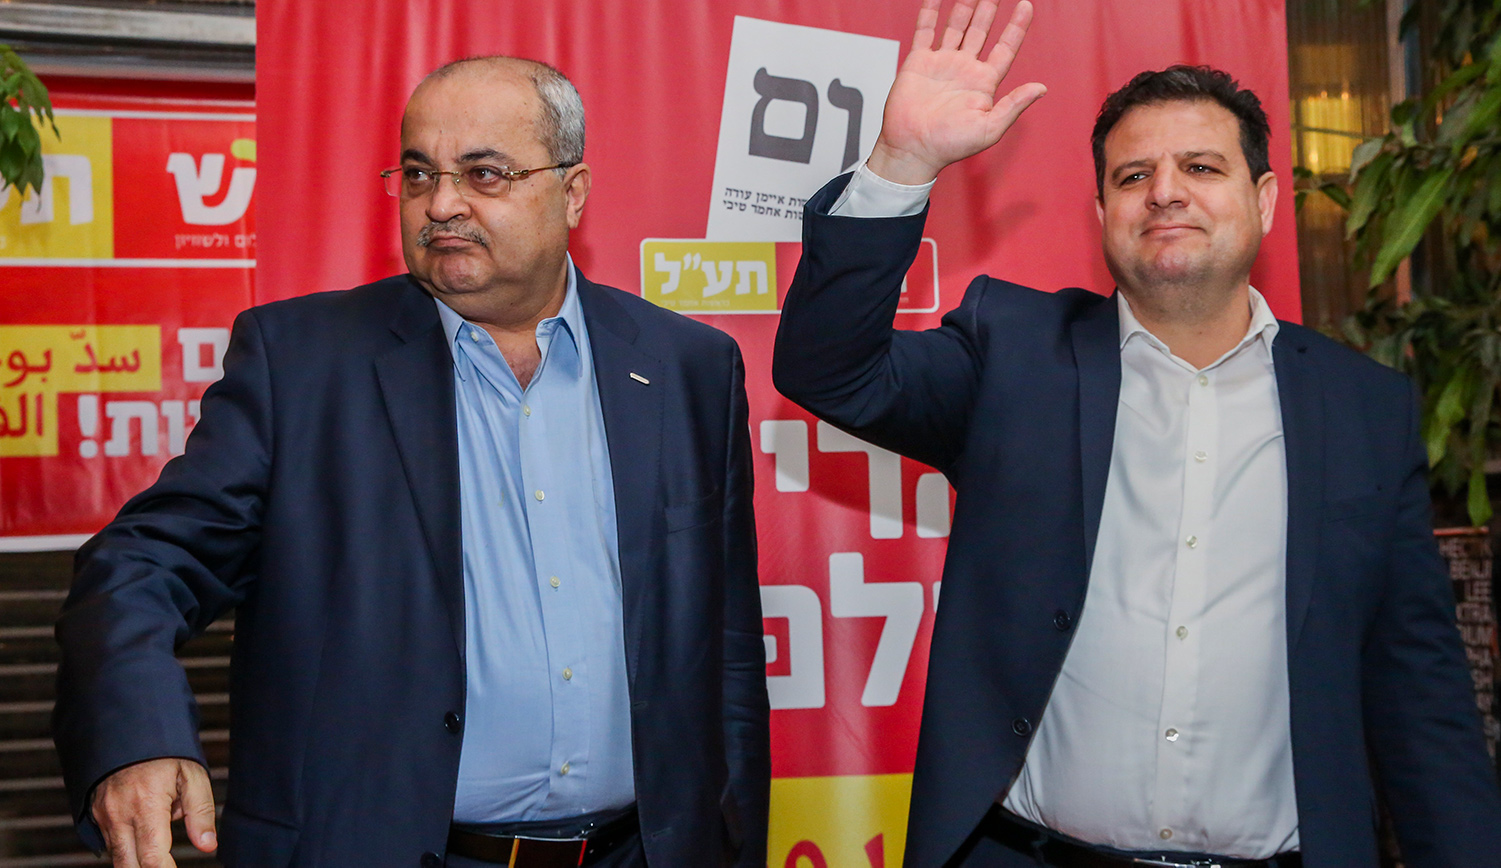 Arab Israeli leaders Aymam Udeh and Ahmad Tibi at the campaign launch for their joint party Ḥadash-Ta'al on March 13, 2019. Flash90.